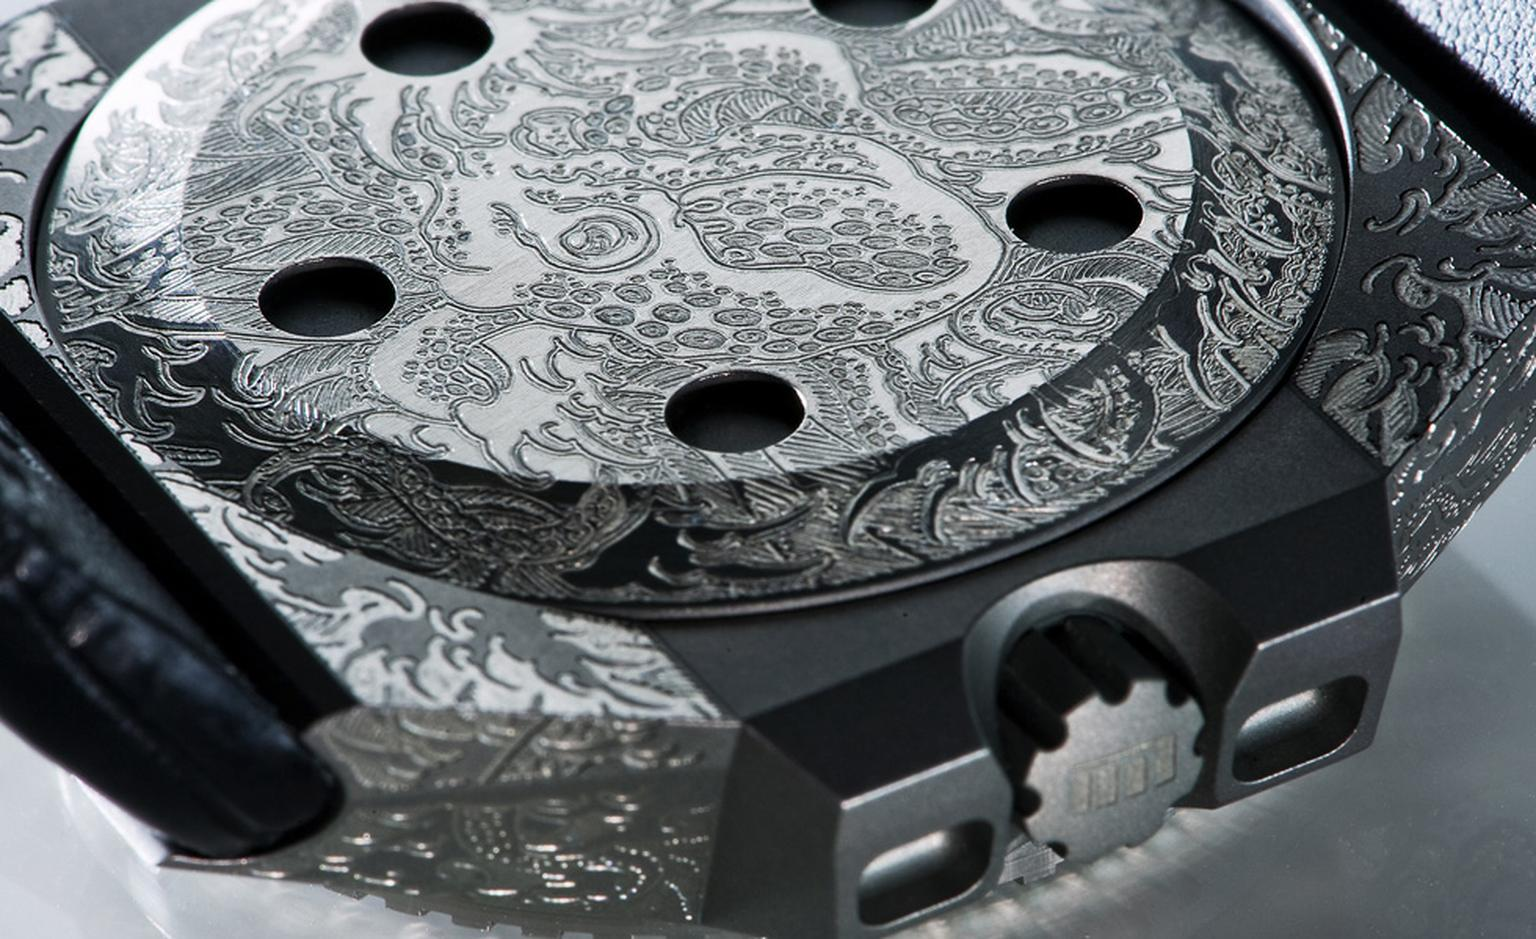 View of the engraved case back of the Oktopus Tattoo that sells for 14,400 euros